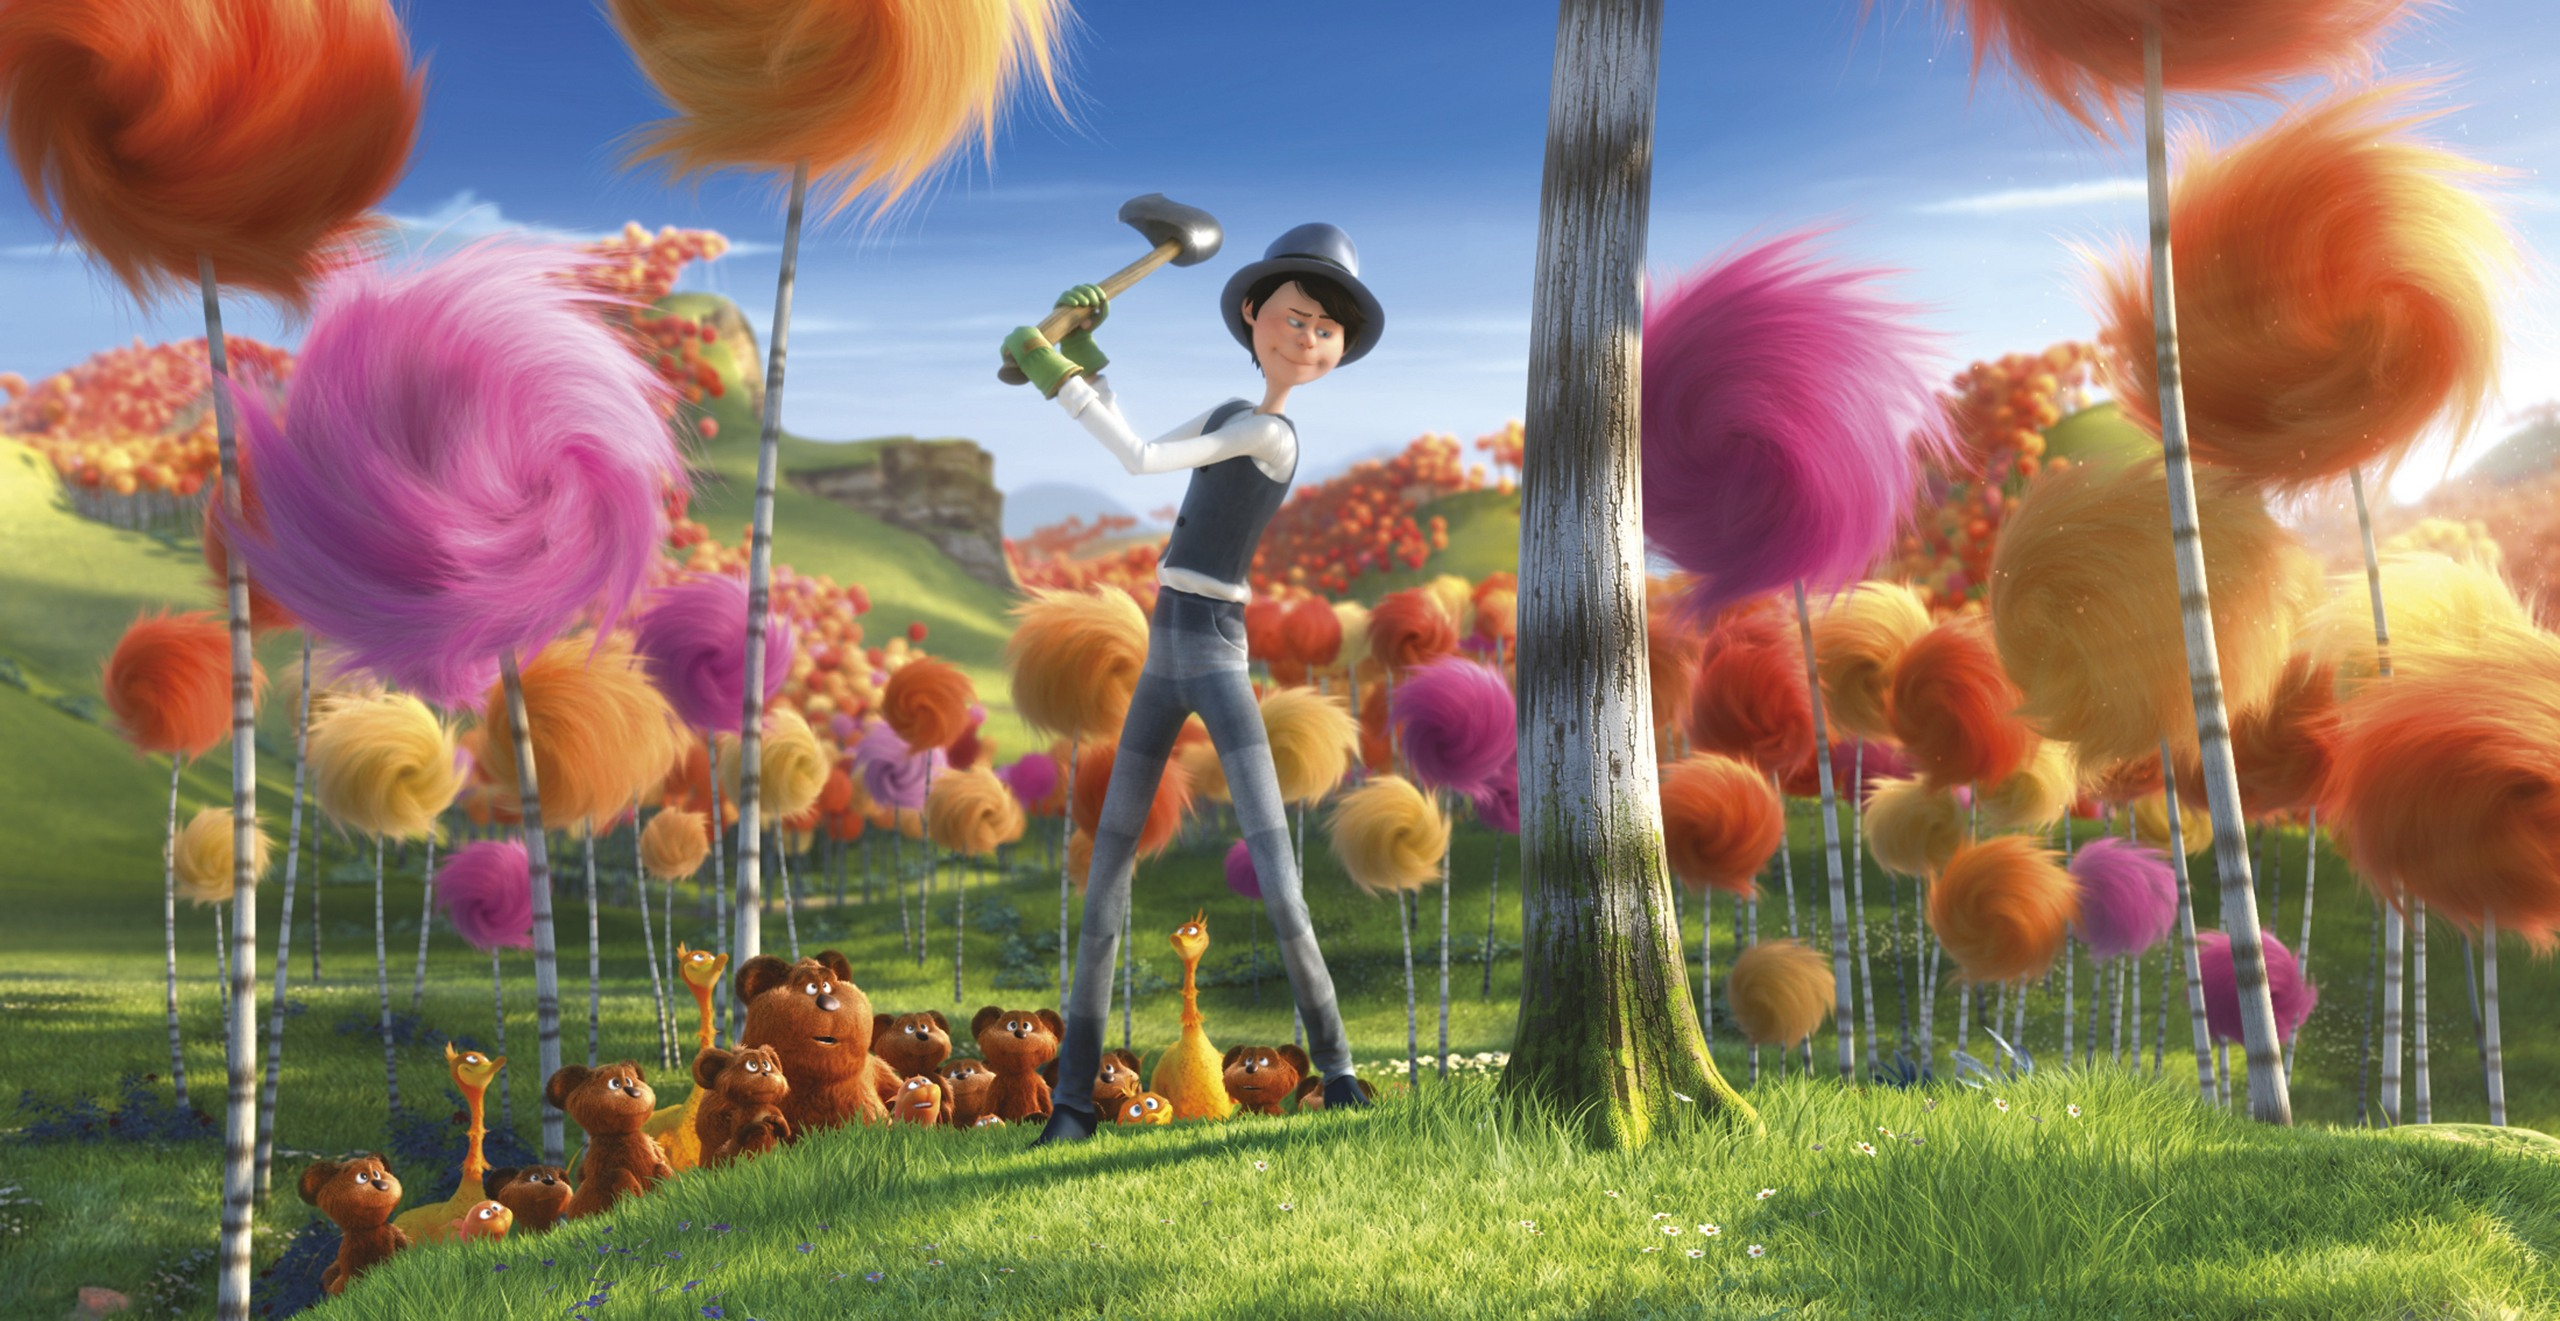 Dr Seuss The Lorax Images The Lorax Hd Wallpaper And Background